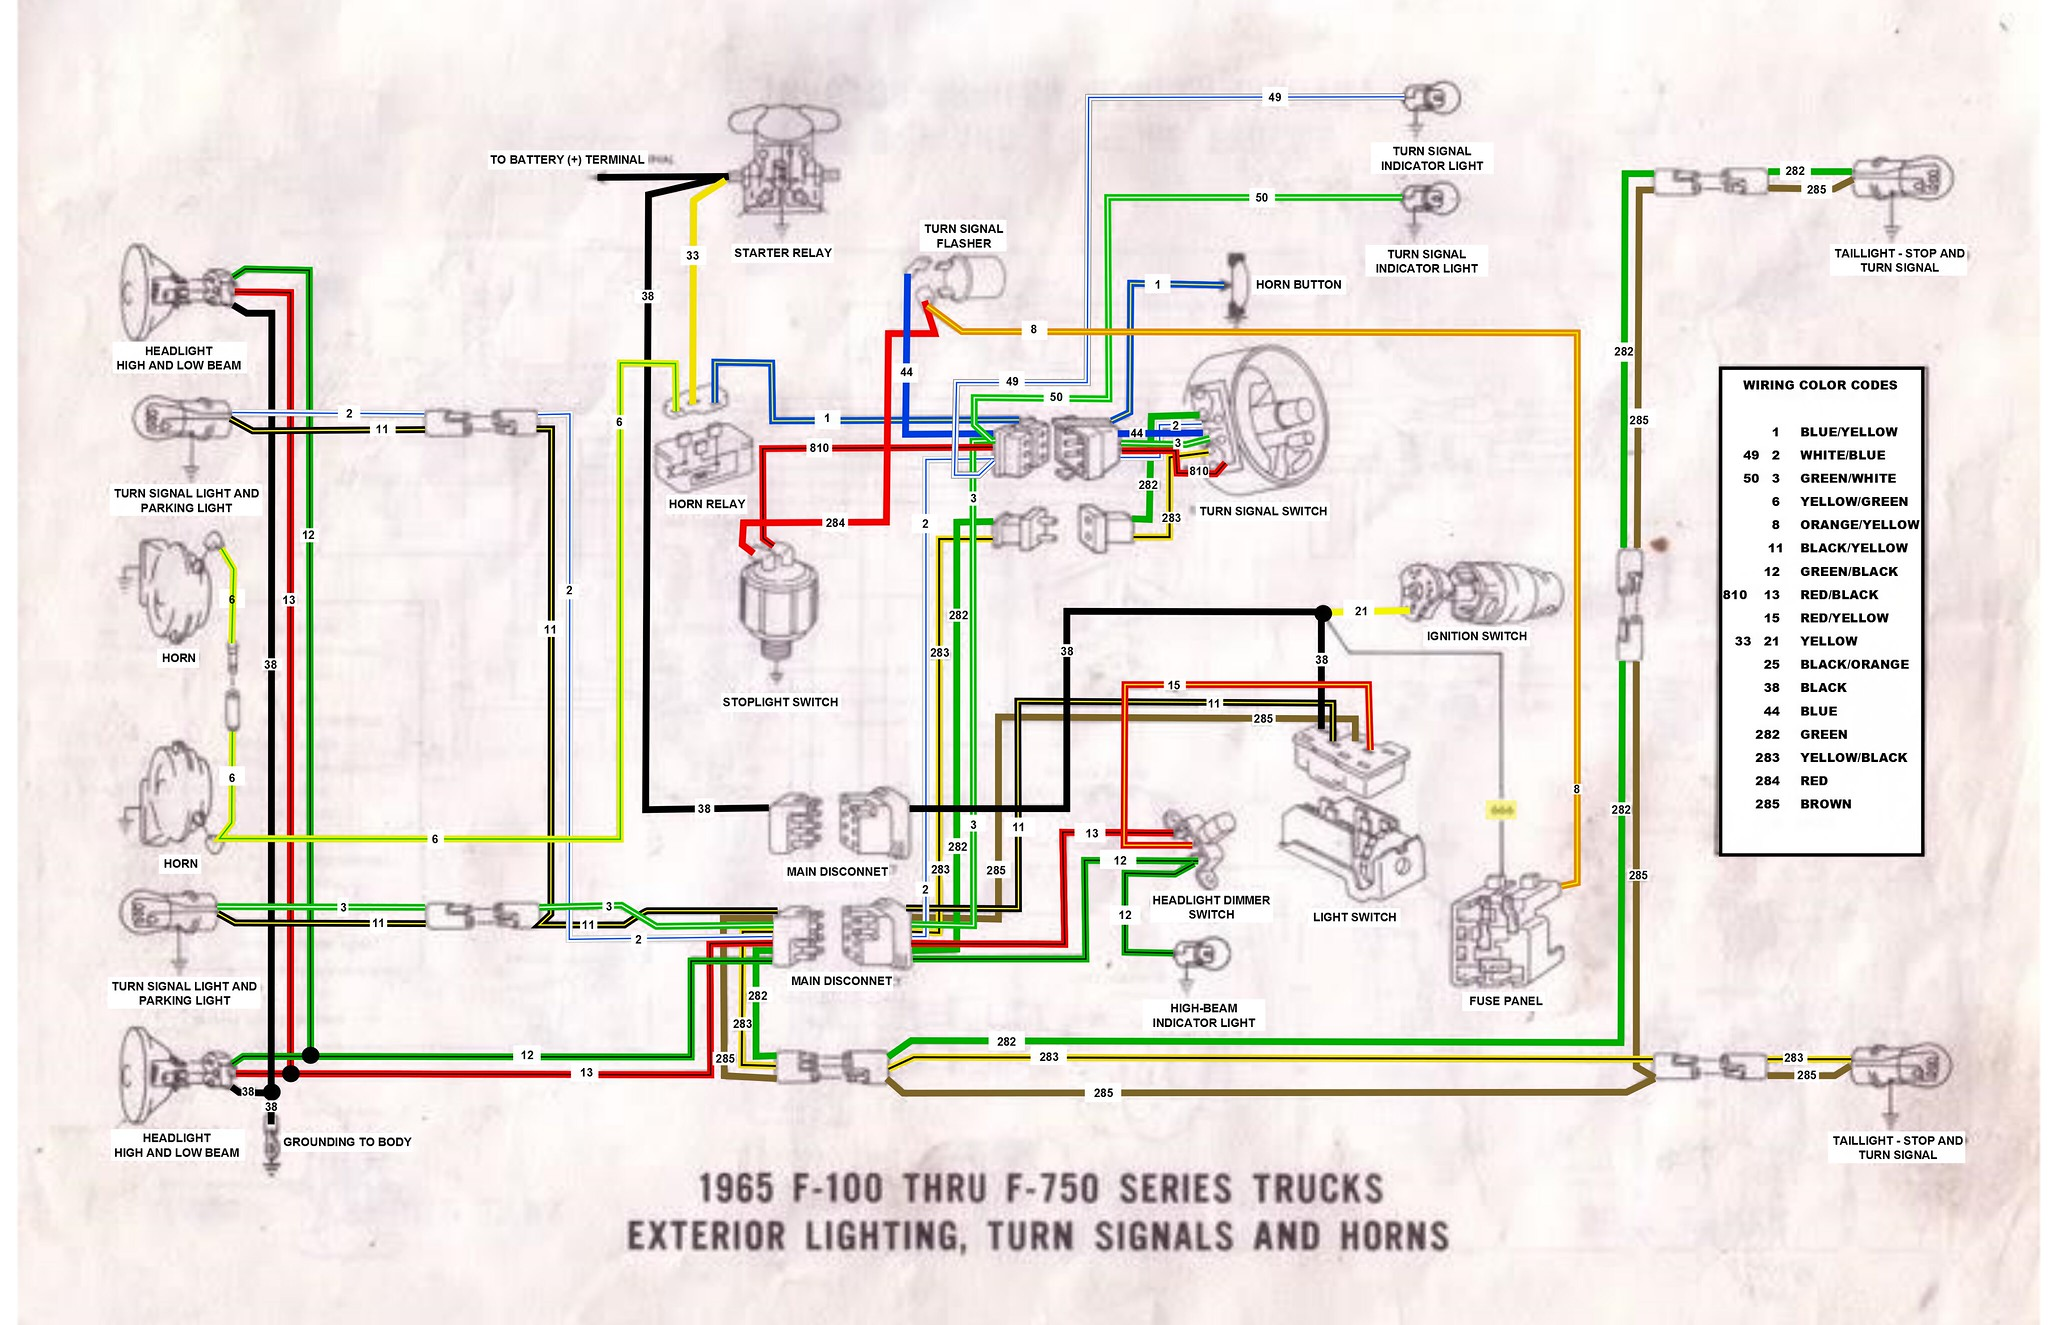 65 F100 F750 Exterior Wiring Diagram Ford Truck Enthusiasts High 2006 Ford Truck Wiring Diagram 2004 Ford F 650 Wiring Diagrams On 65 F100 F750 Exterior Wiring Diagram Ford Truck Enthusiasts High